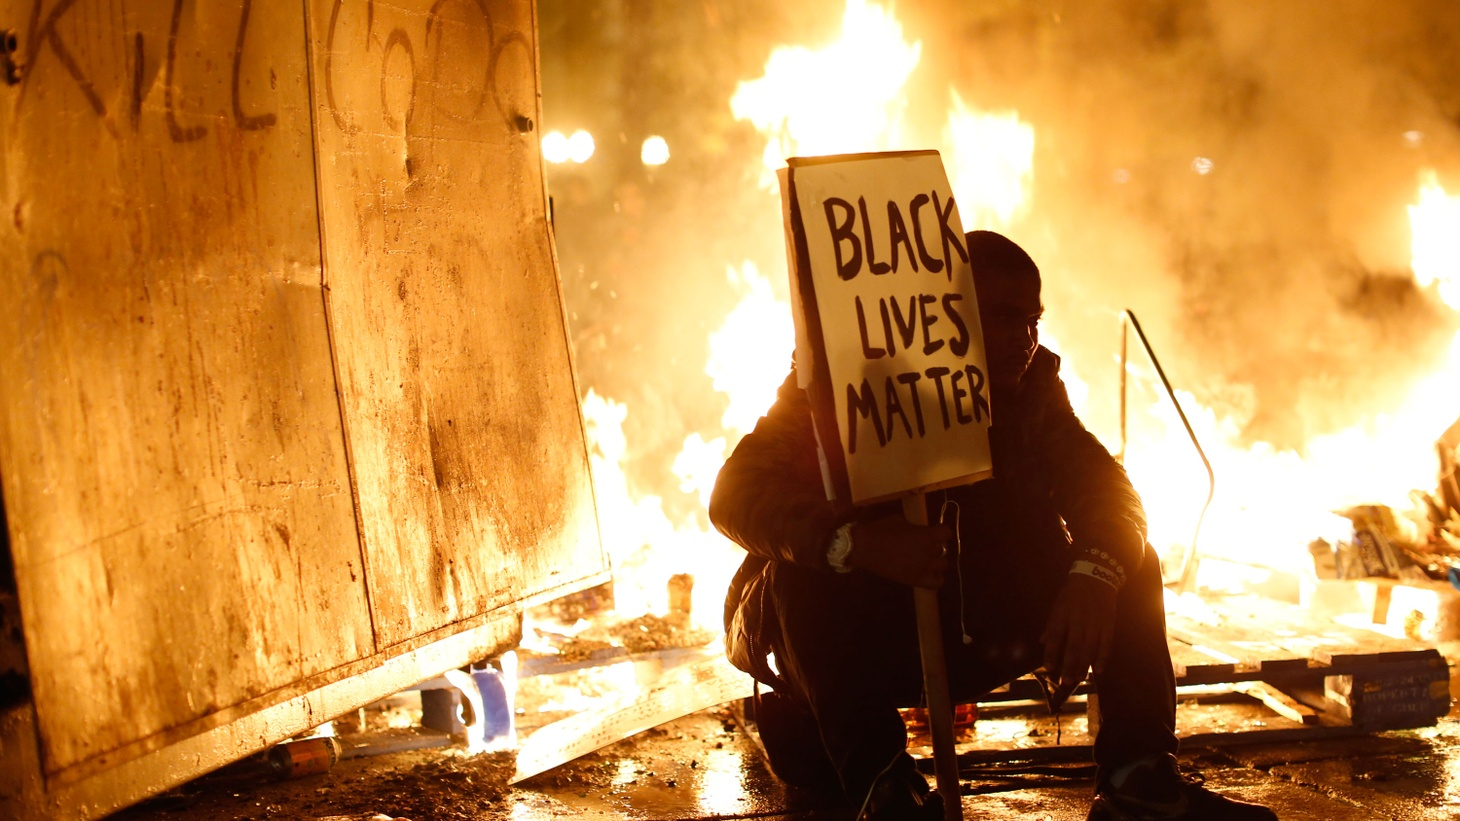 Ferguson, Missouri erupted last night after a grand jury held that white Officer Darren Wilson's killing of black teenager Michael Brown was not a crime. We look at the process, the mountain of evidence and what the incident could mean for the country.